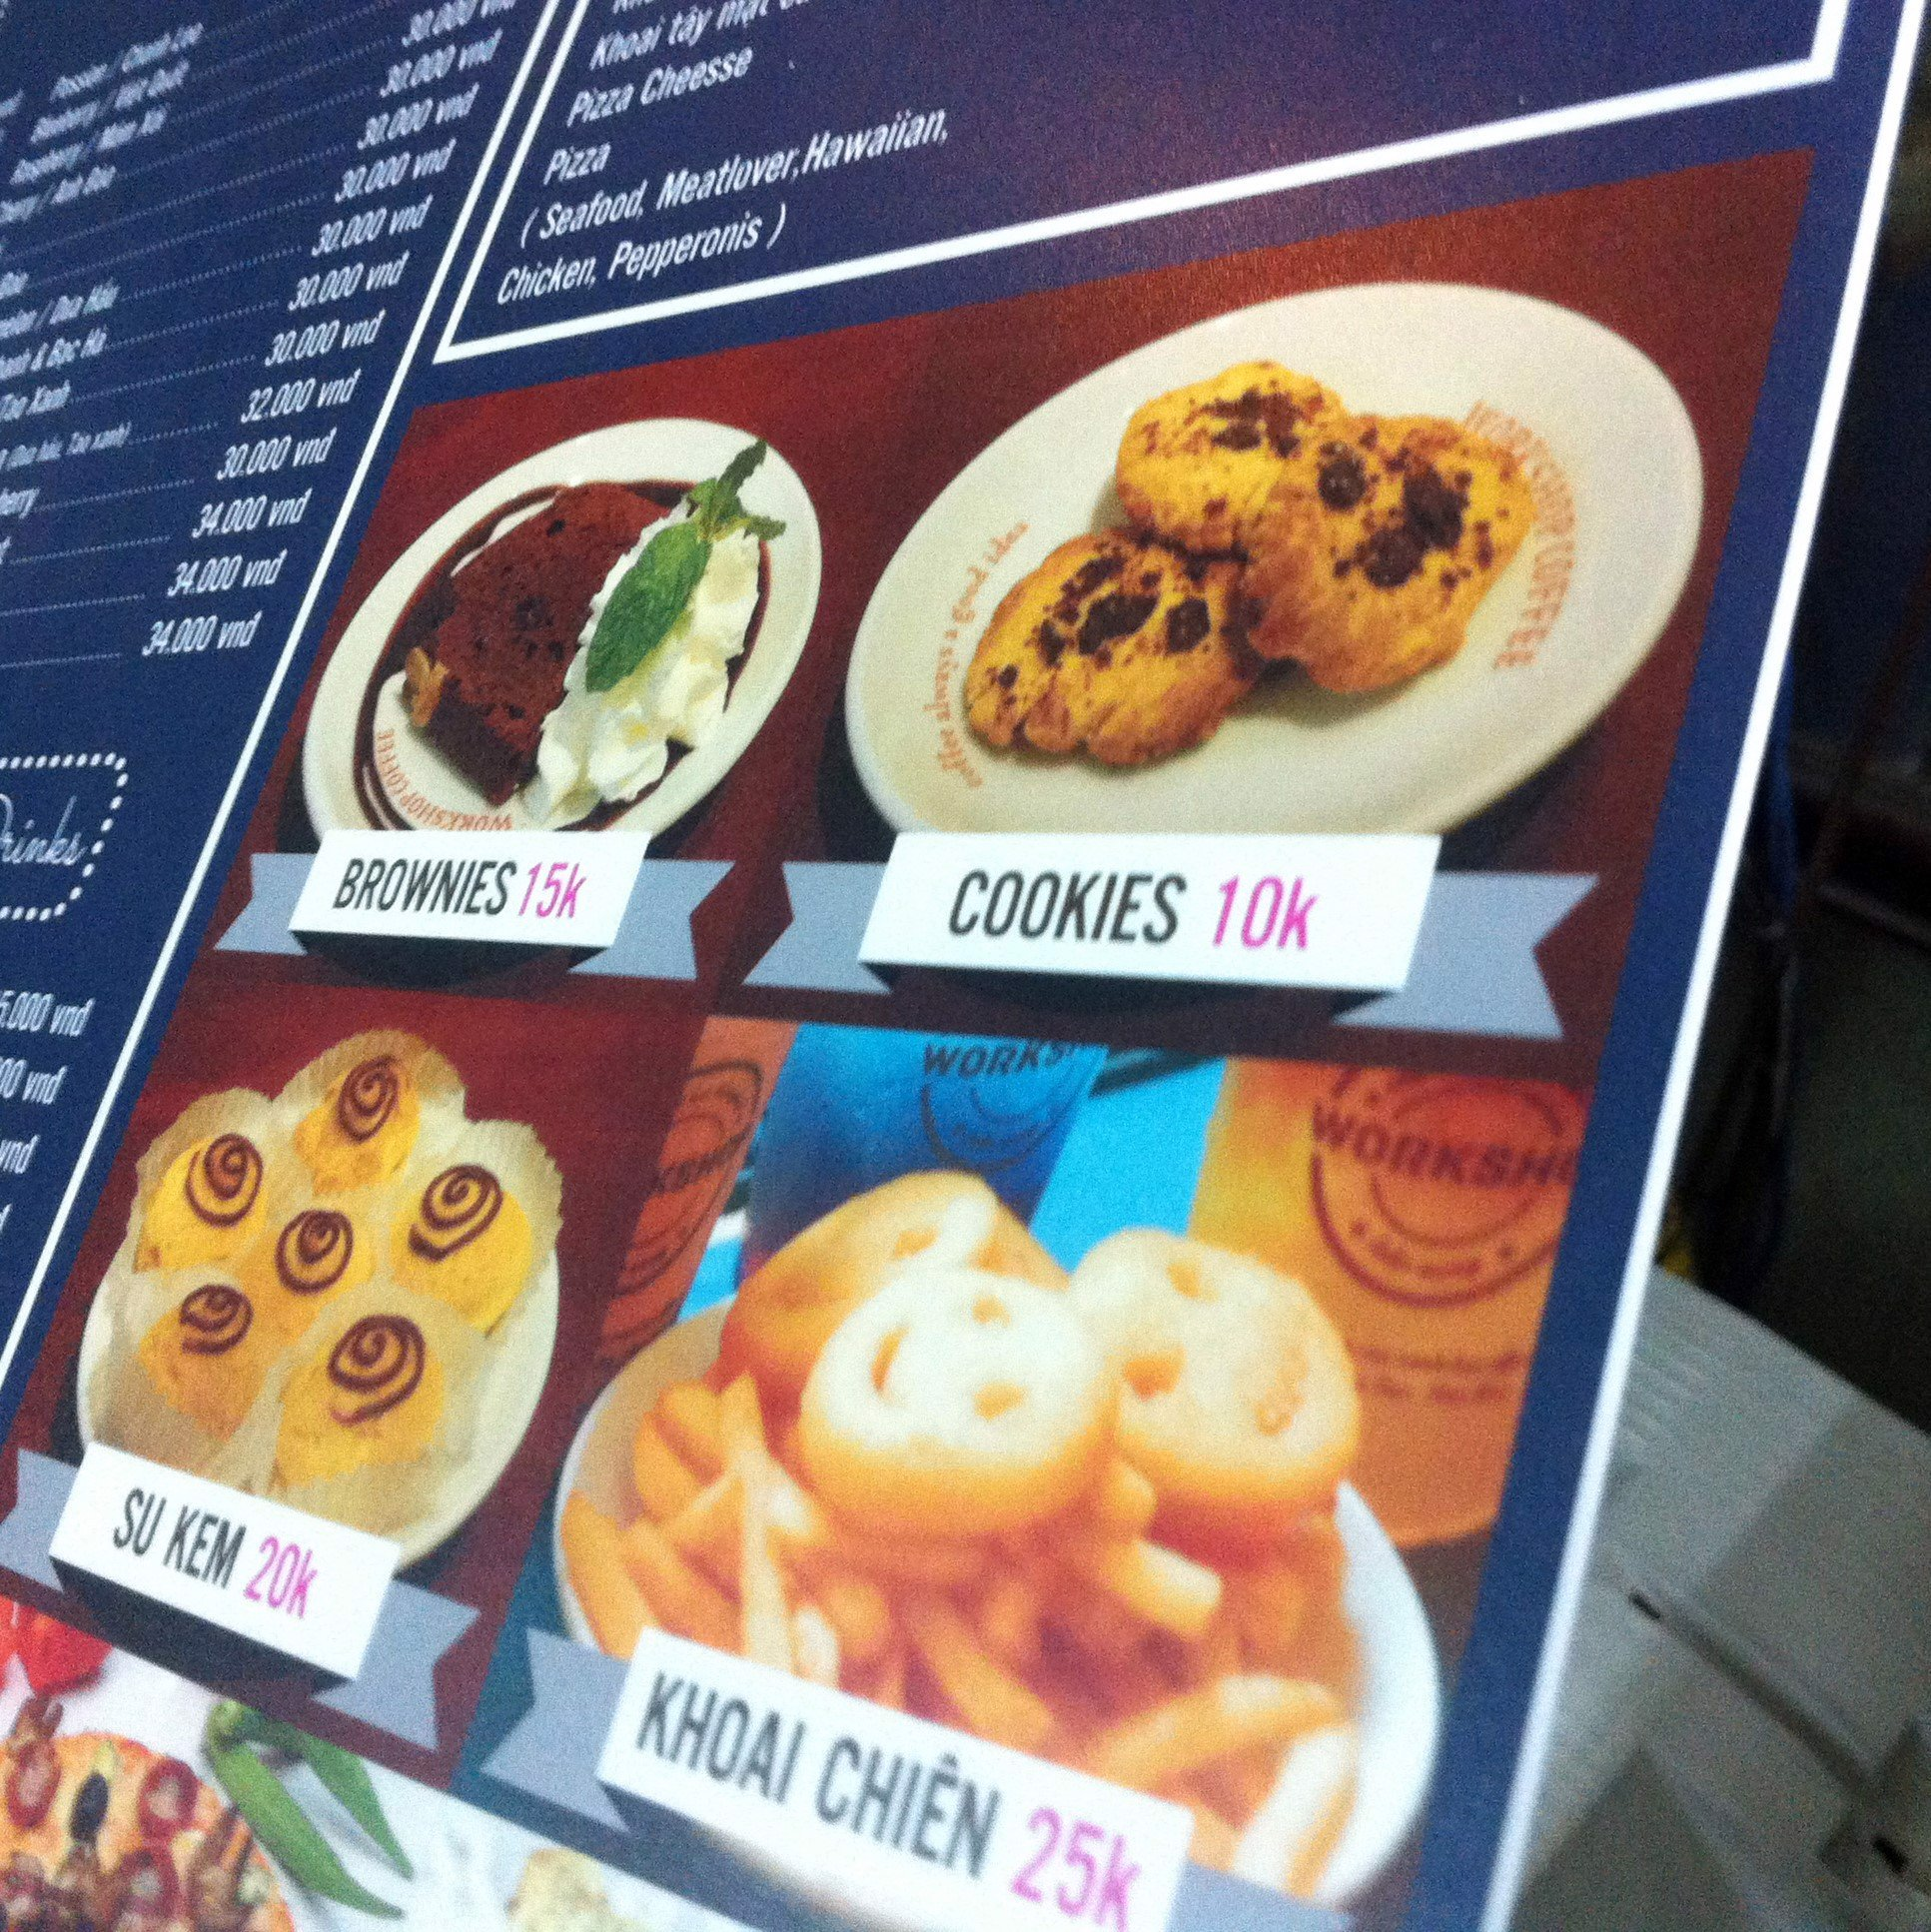 In fomex Menu